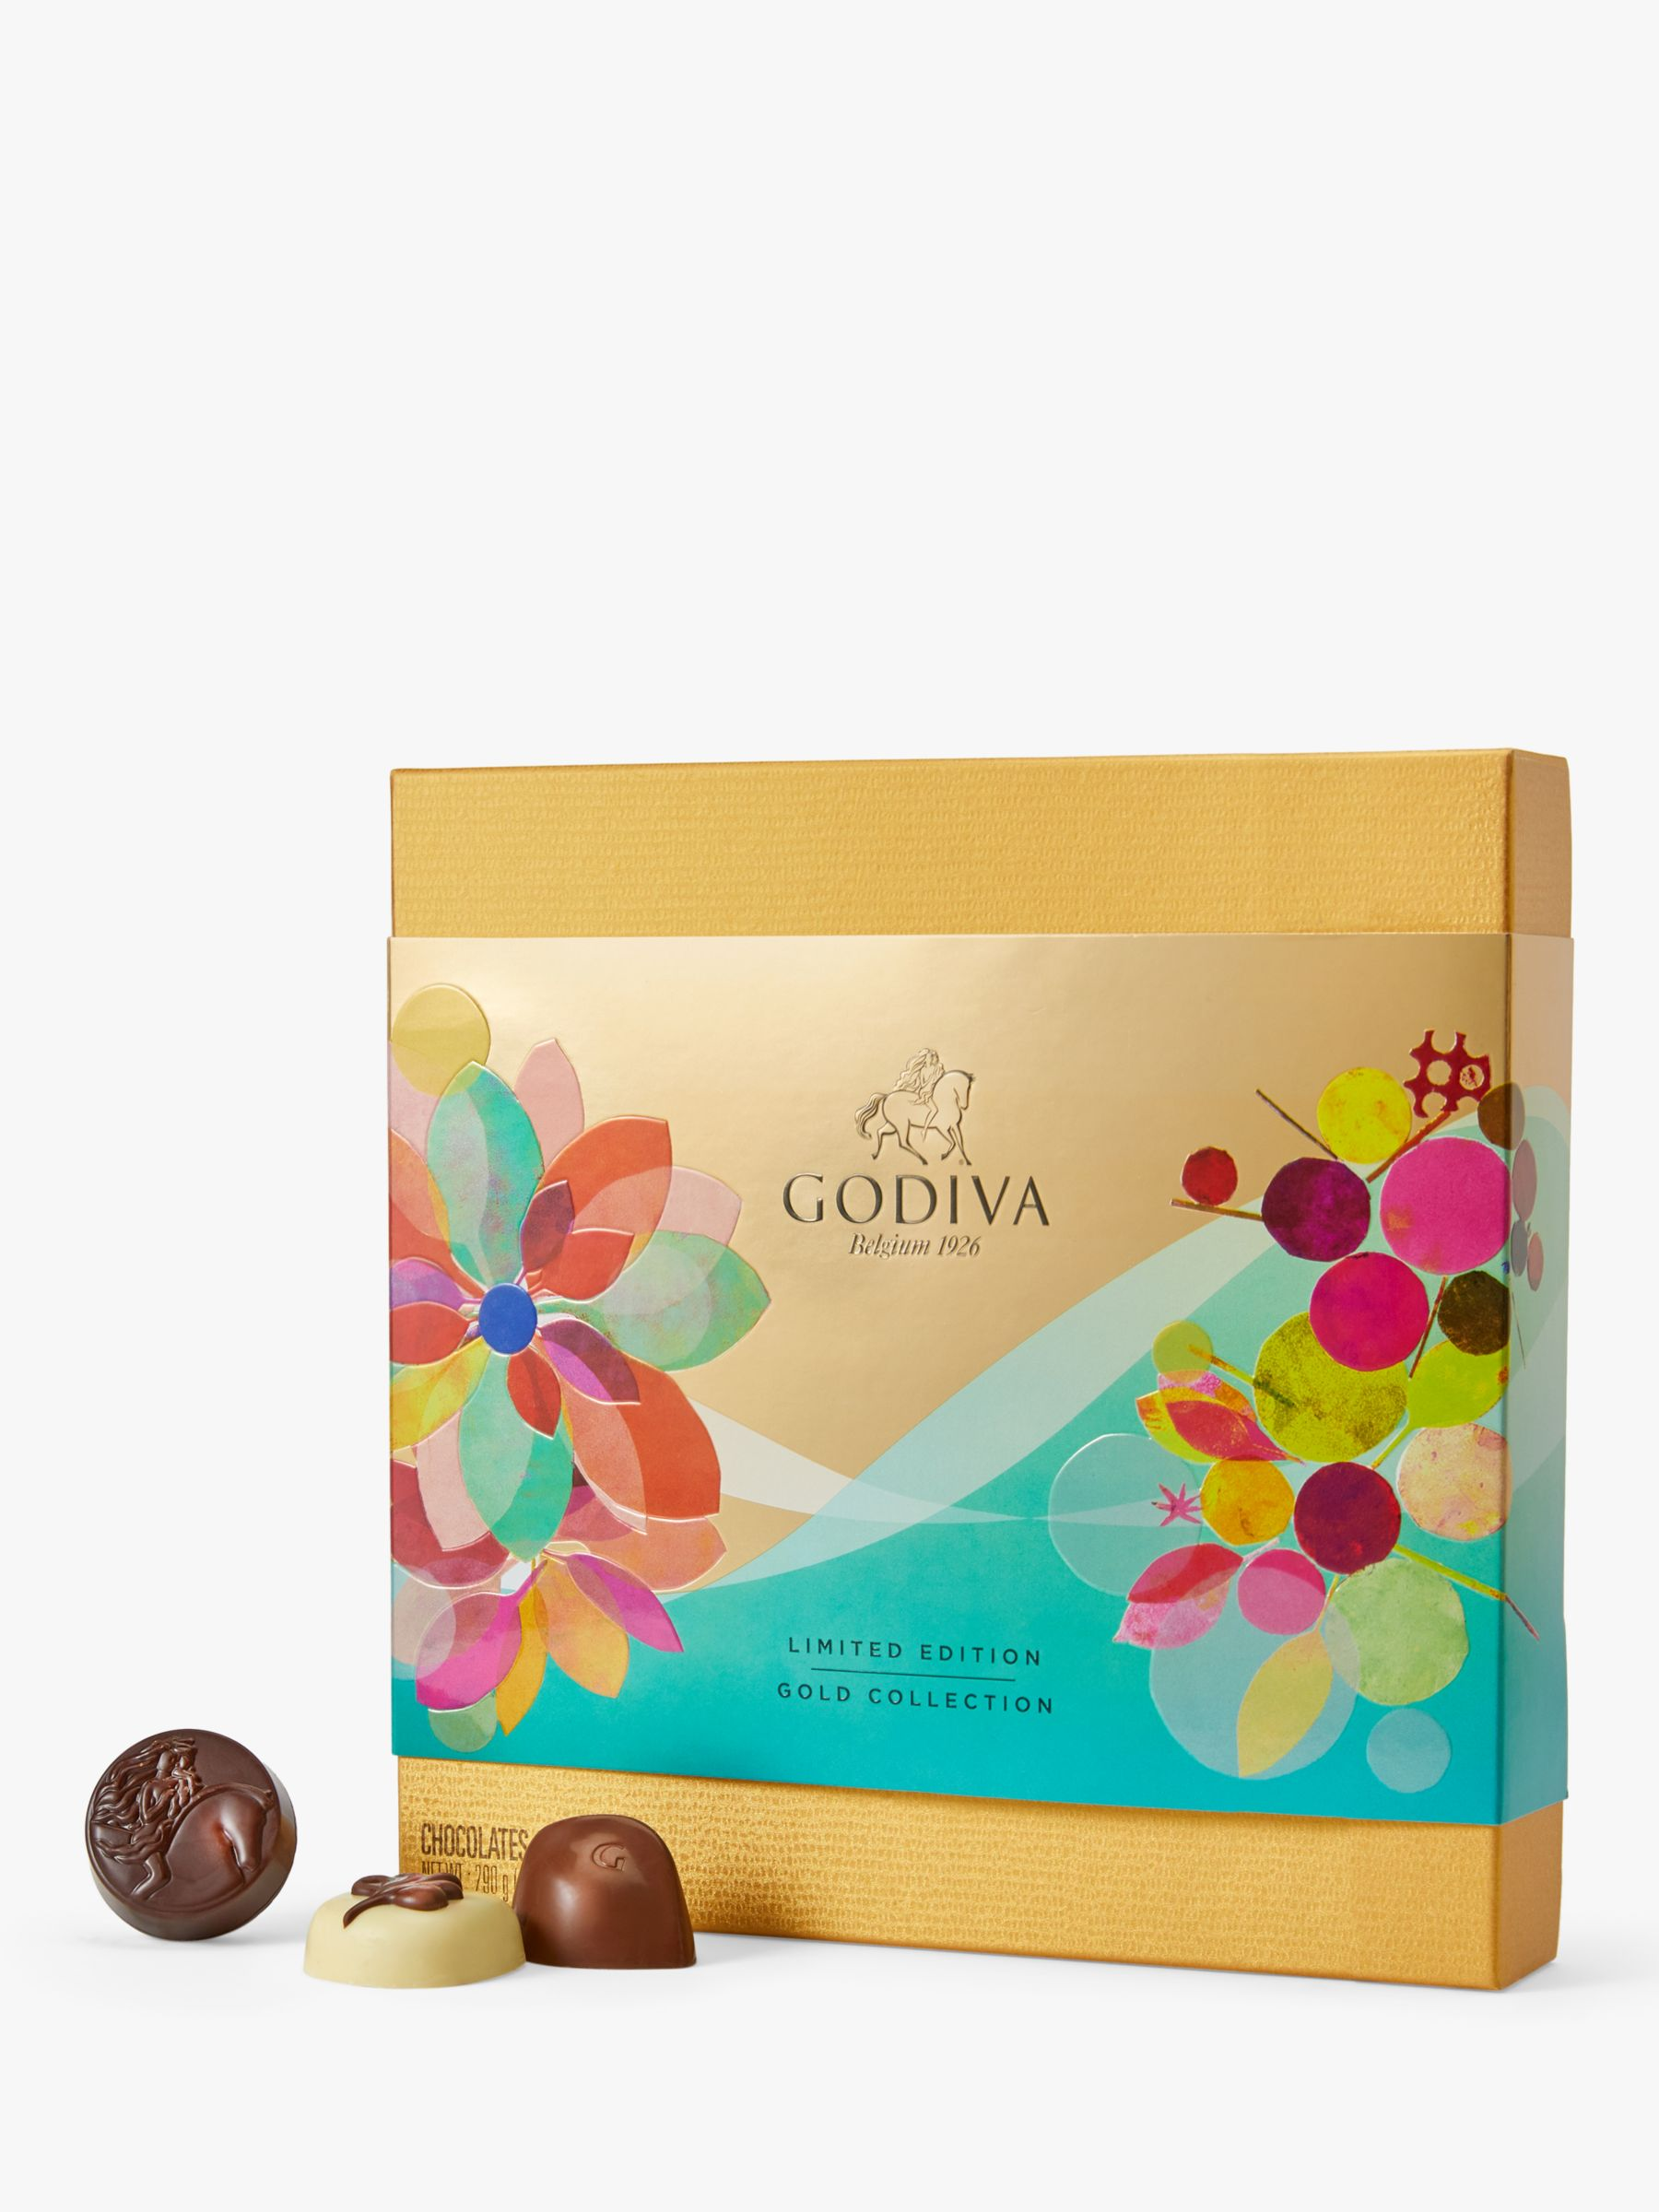 Godiva Godiva Limited Edition Gold Collection, 24 Pieces, 290g